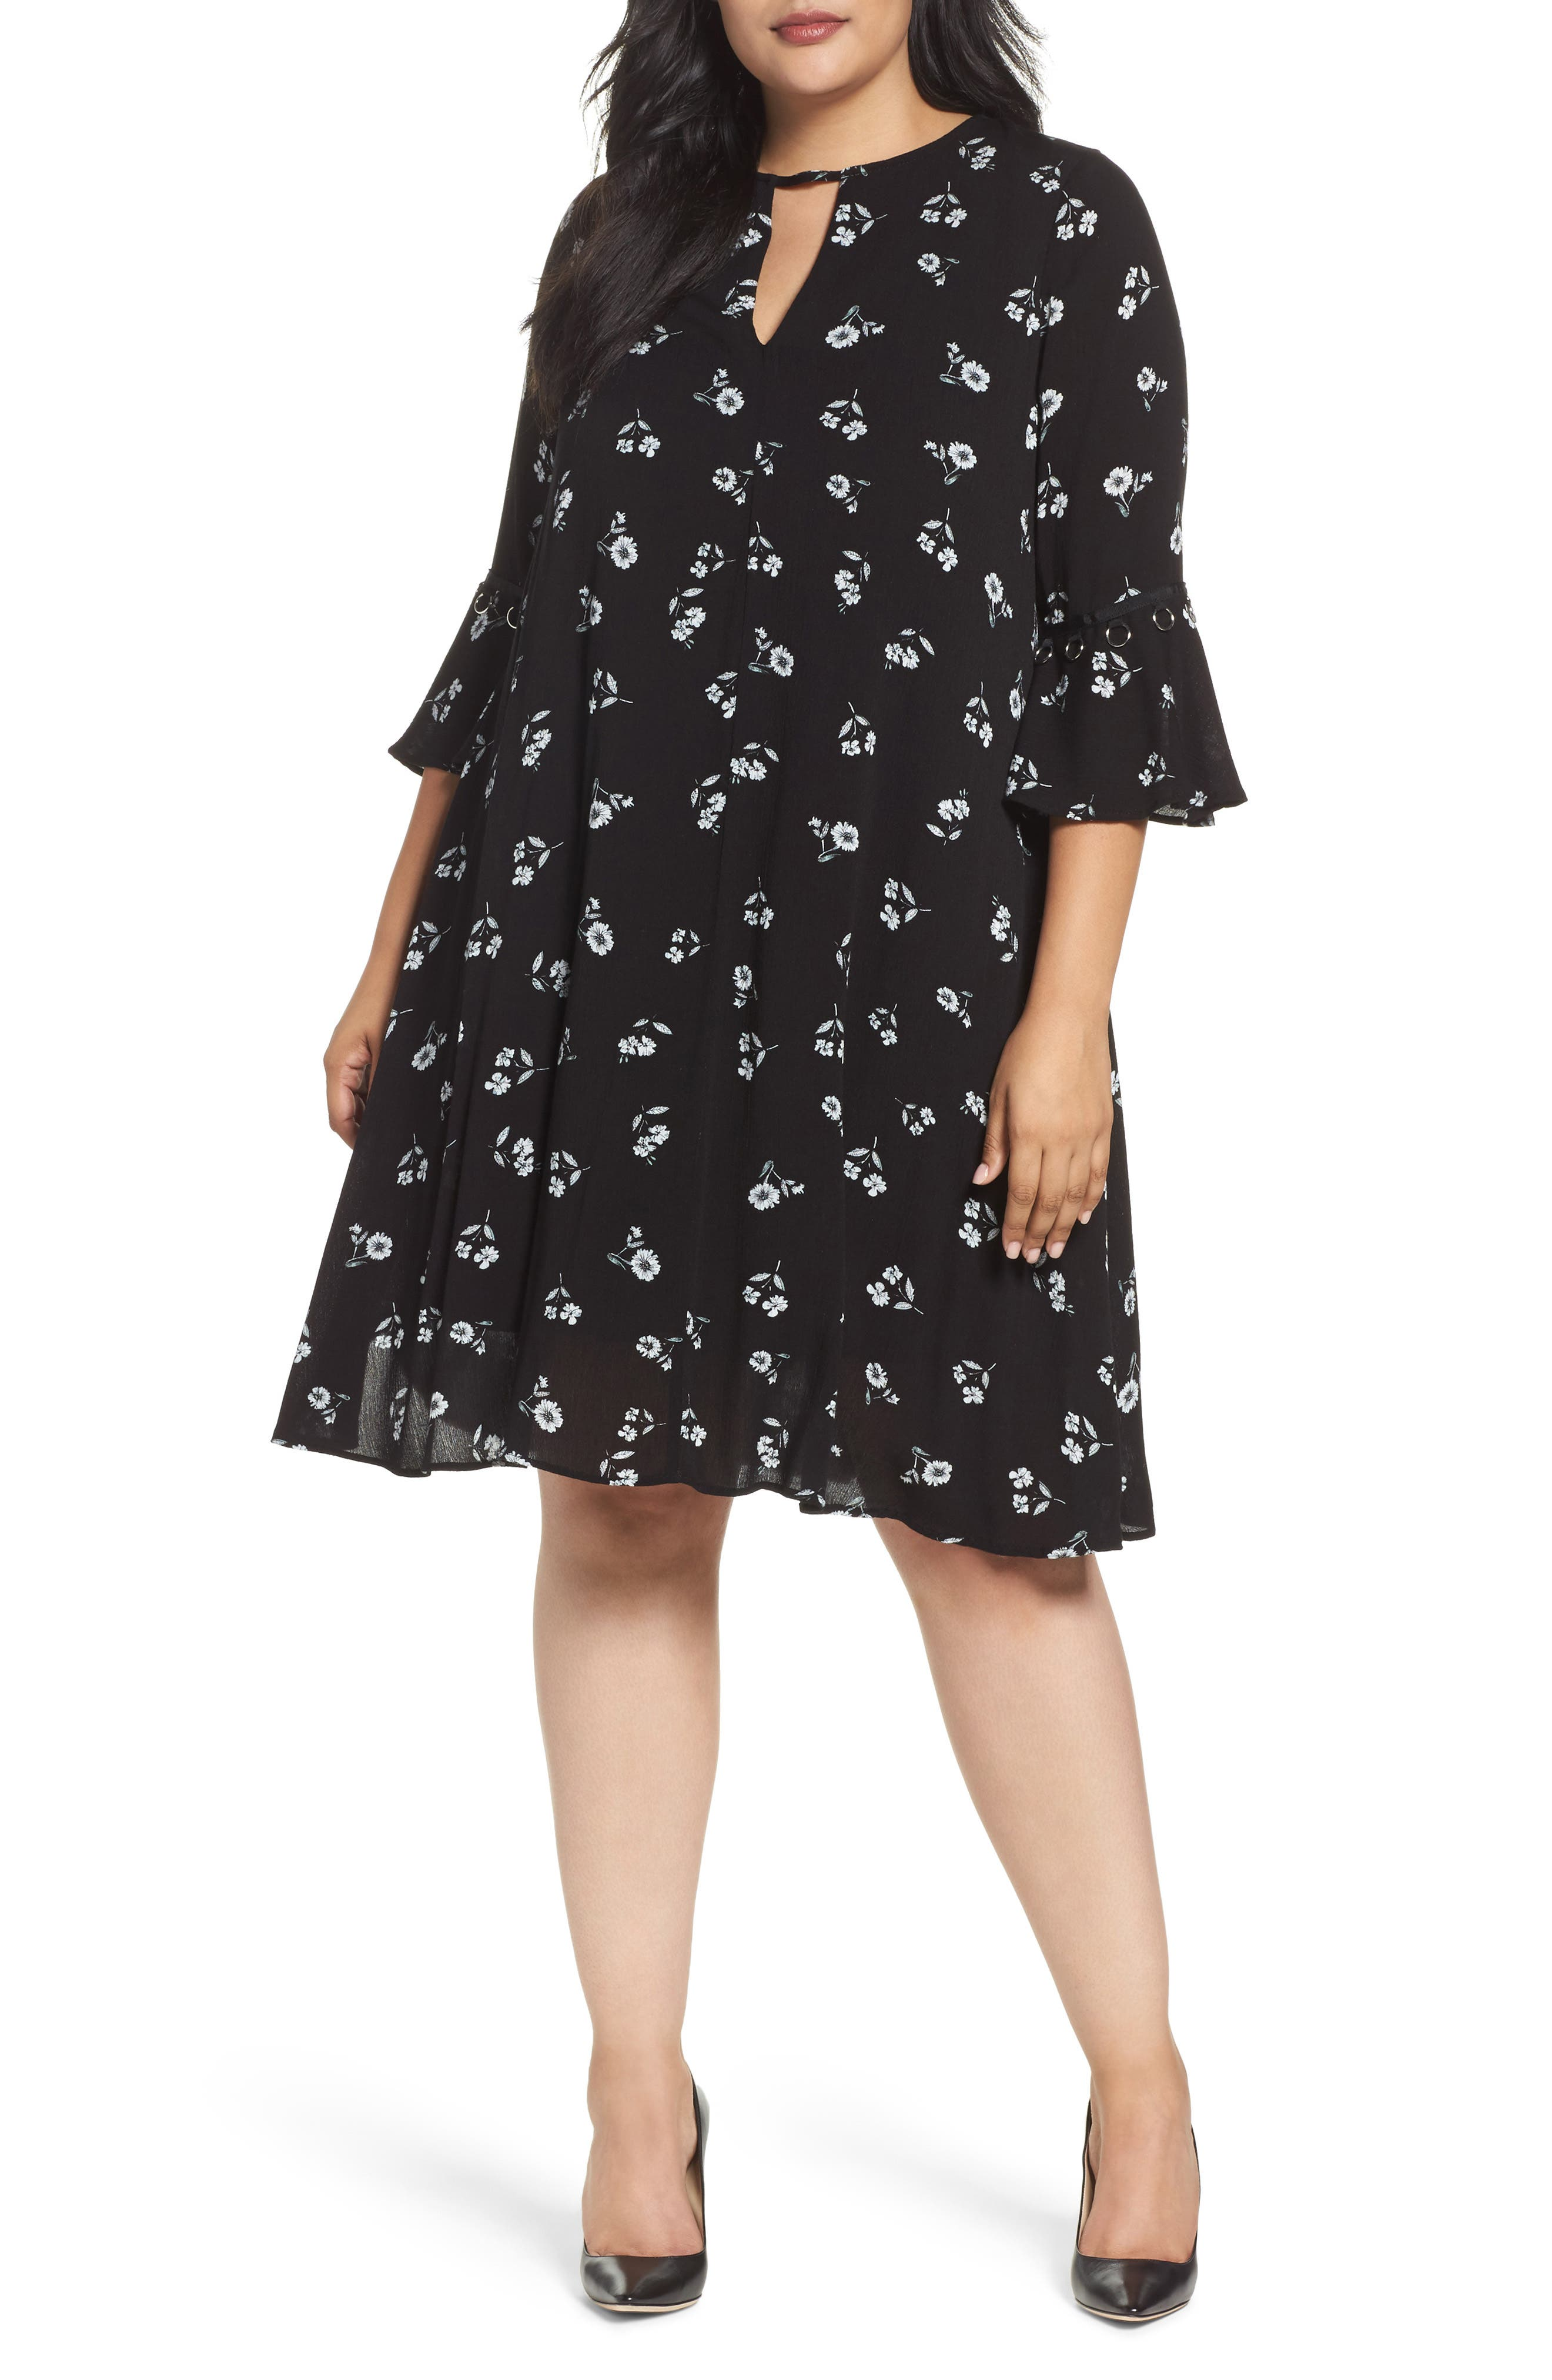 Alternate Image 1 Selected - Glamorous Bell Sleeve Floral Shift Dress (Plus Size)